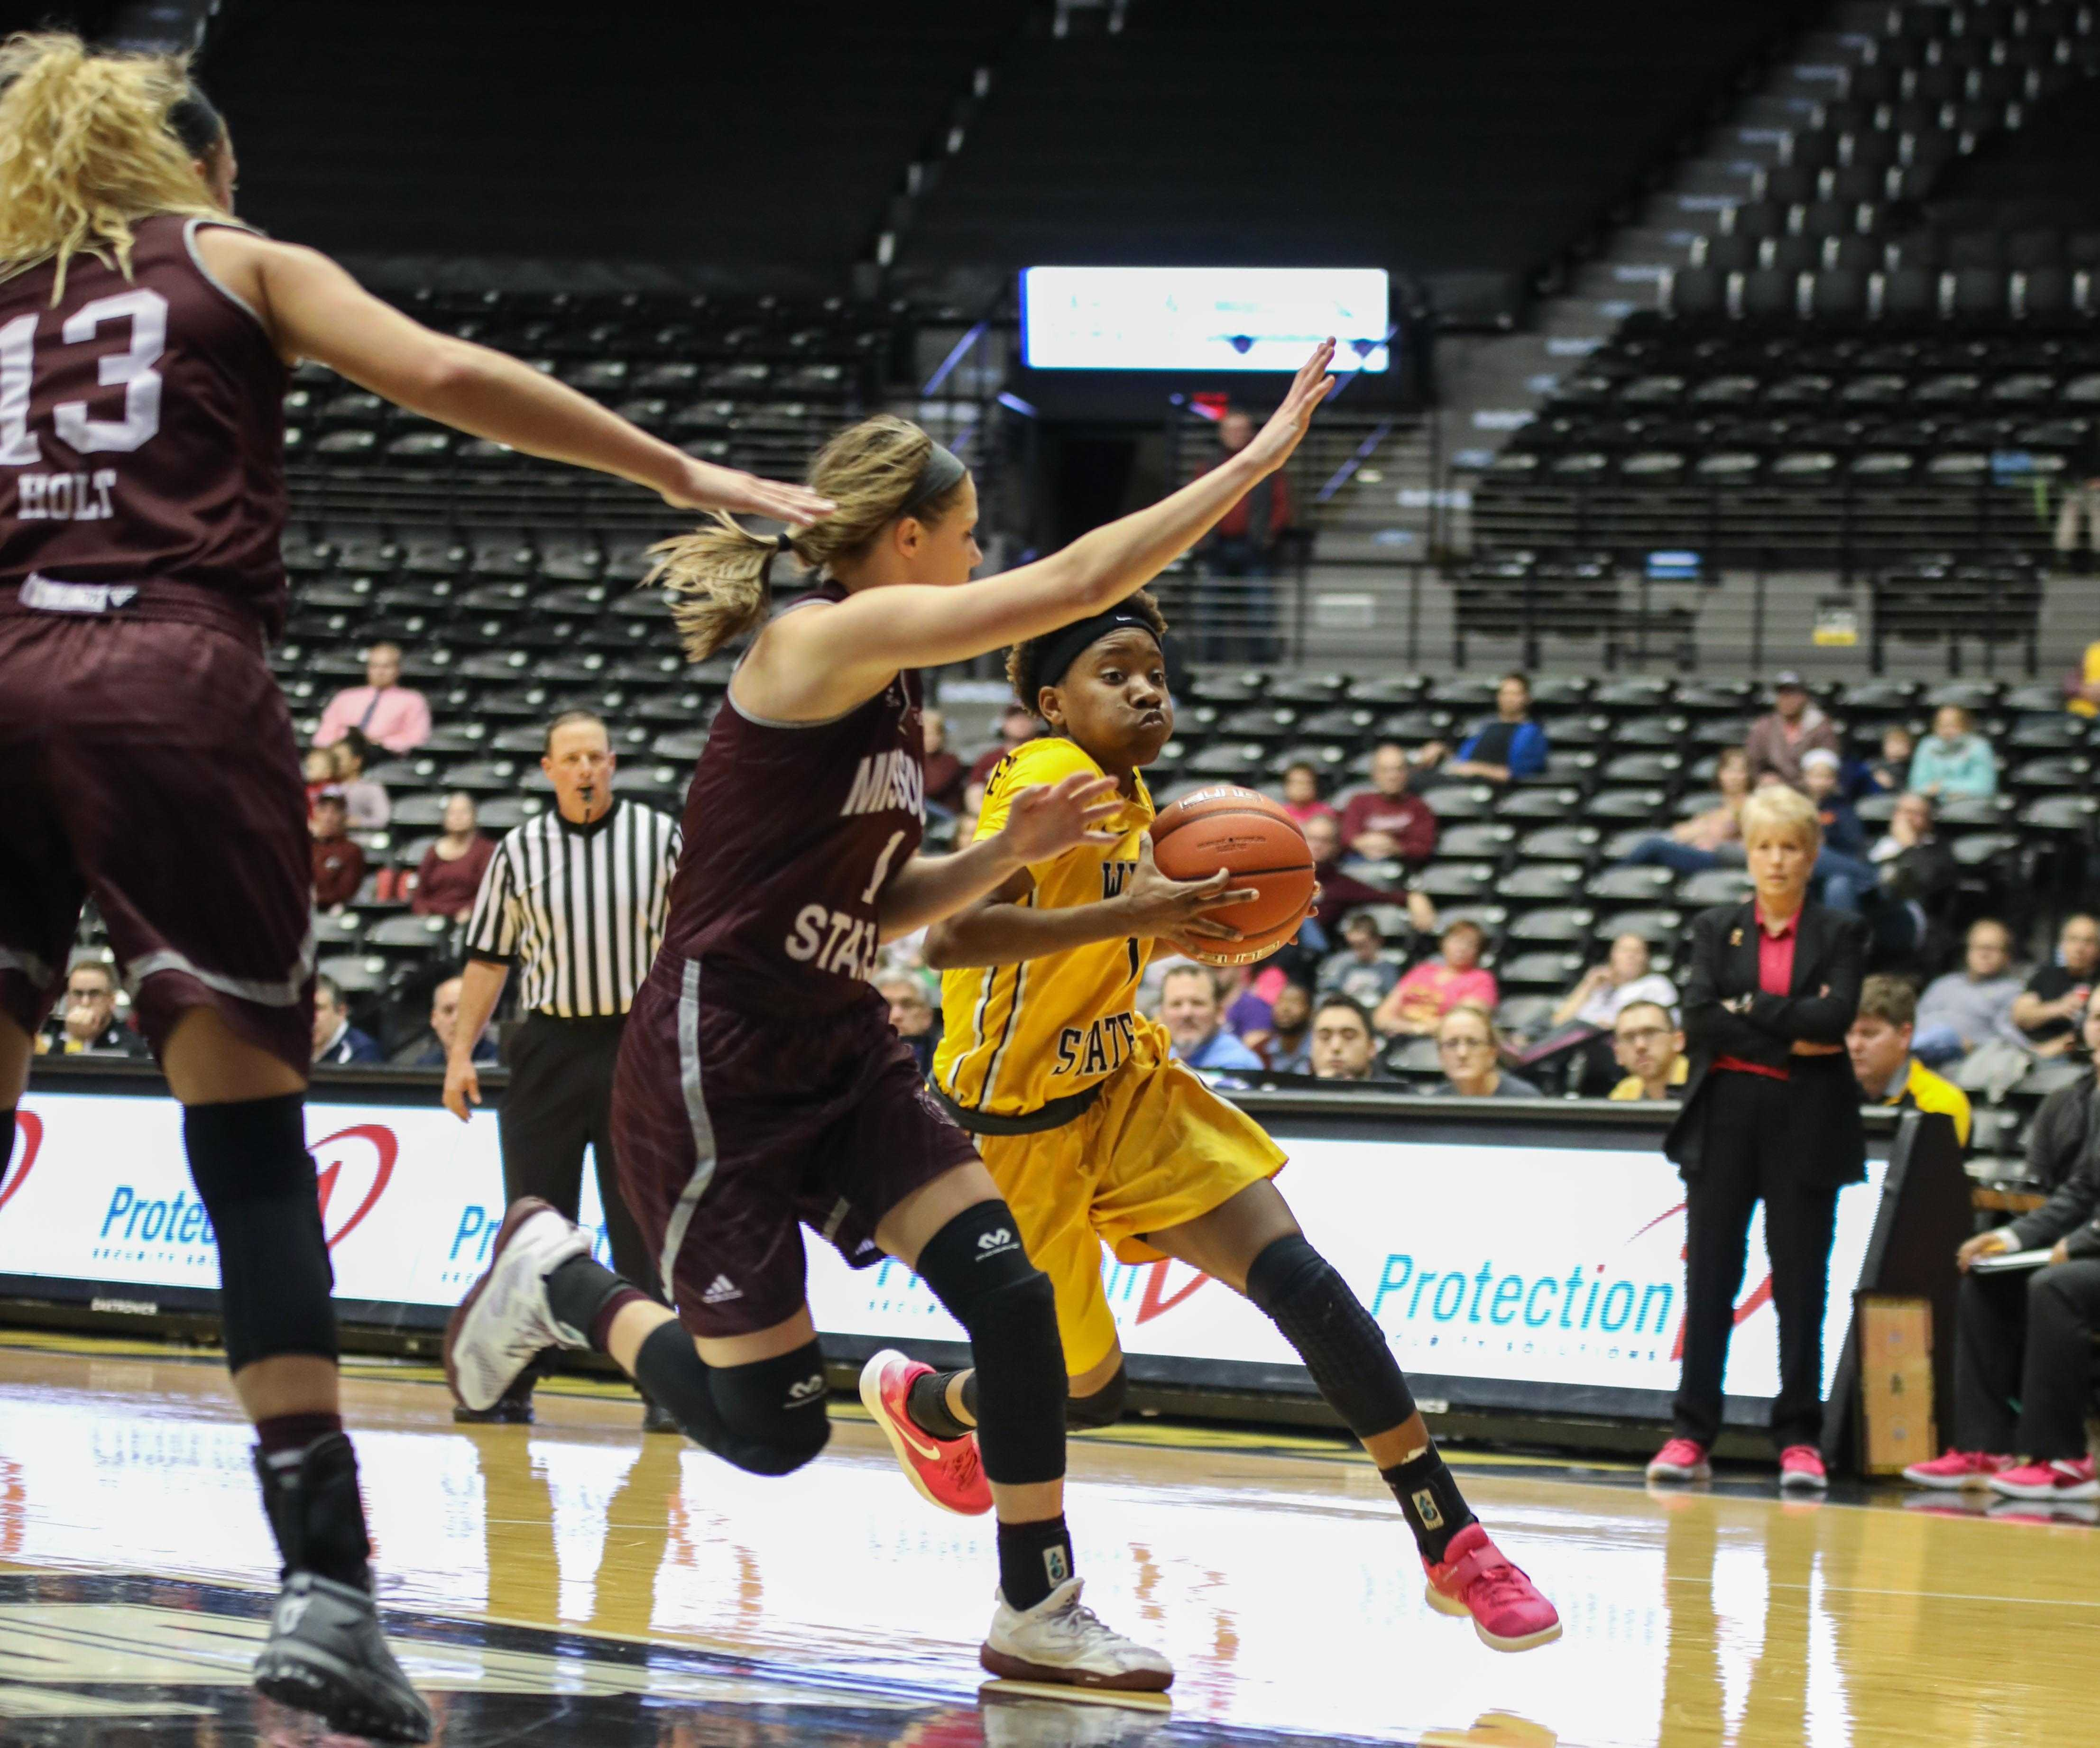 Keke Thompson drives into the lane Sunday afternoon against Missouri State. Wichita State lost 60-65.